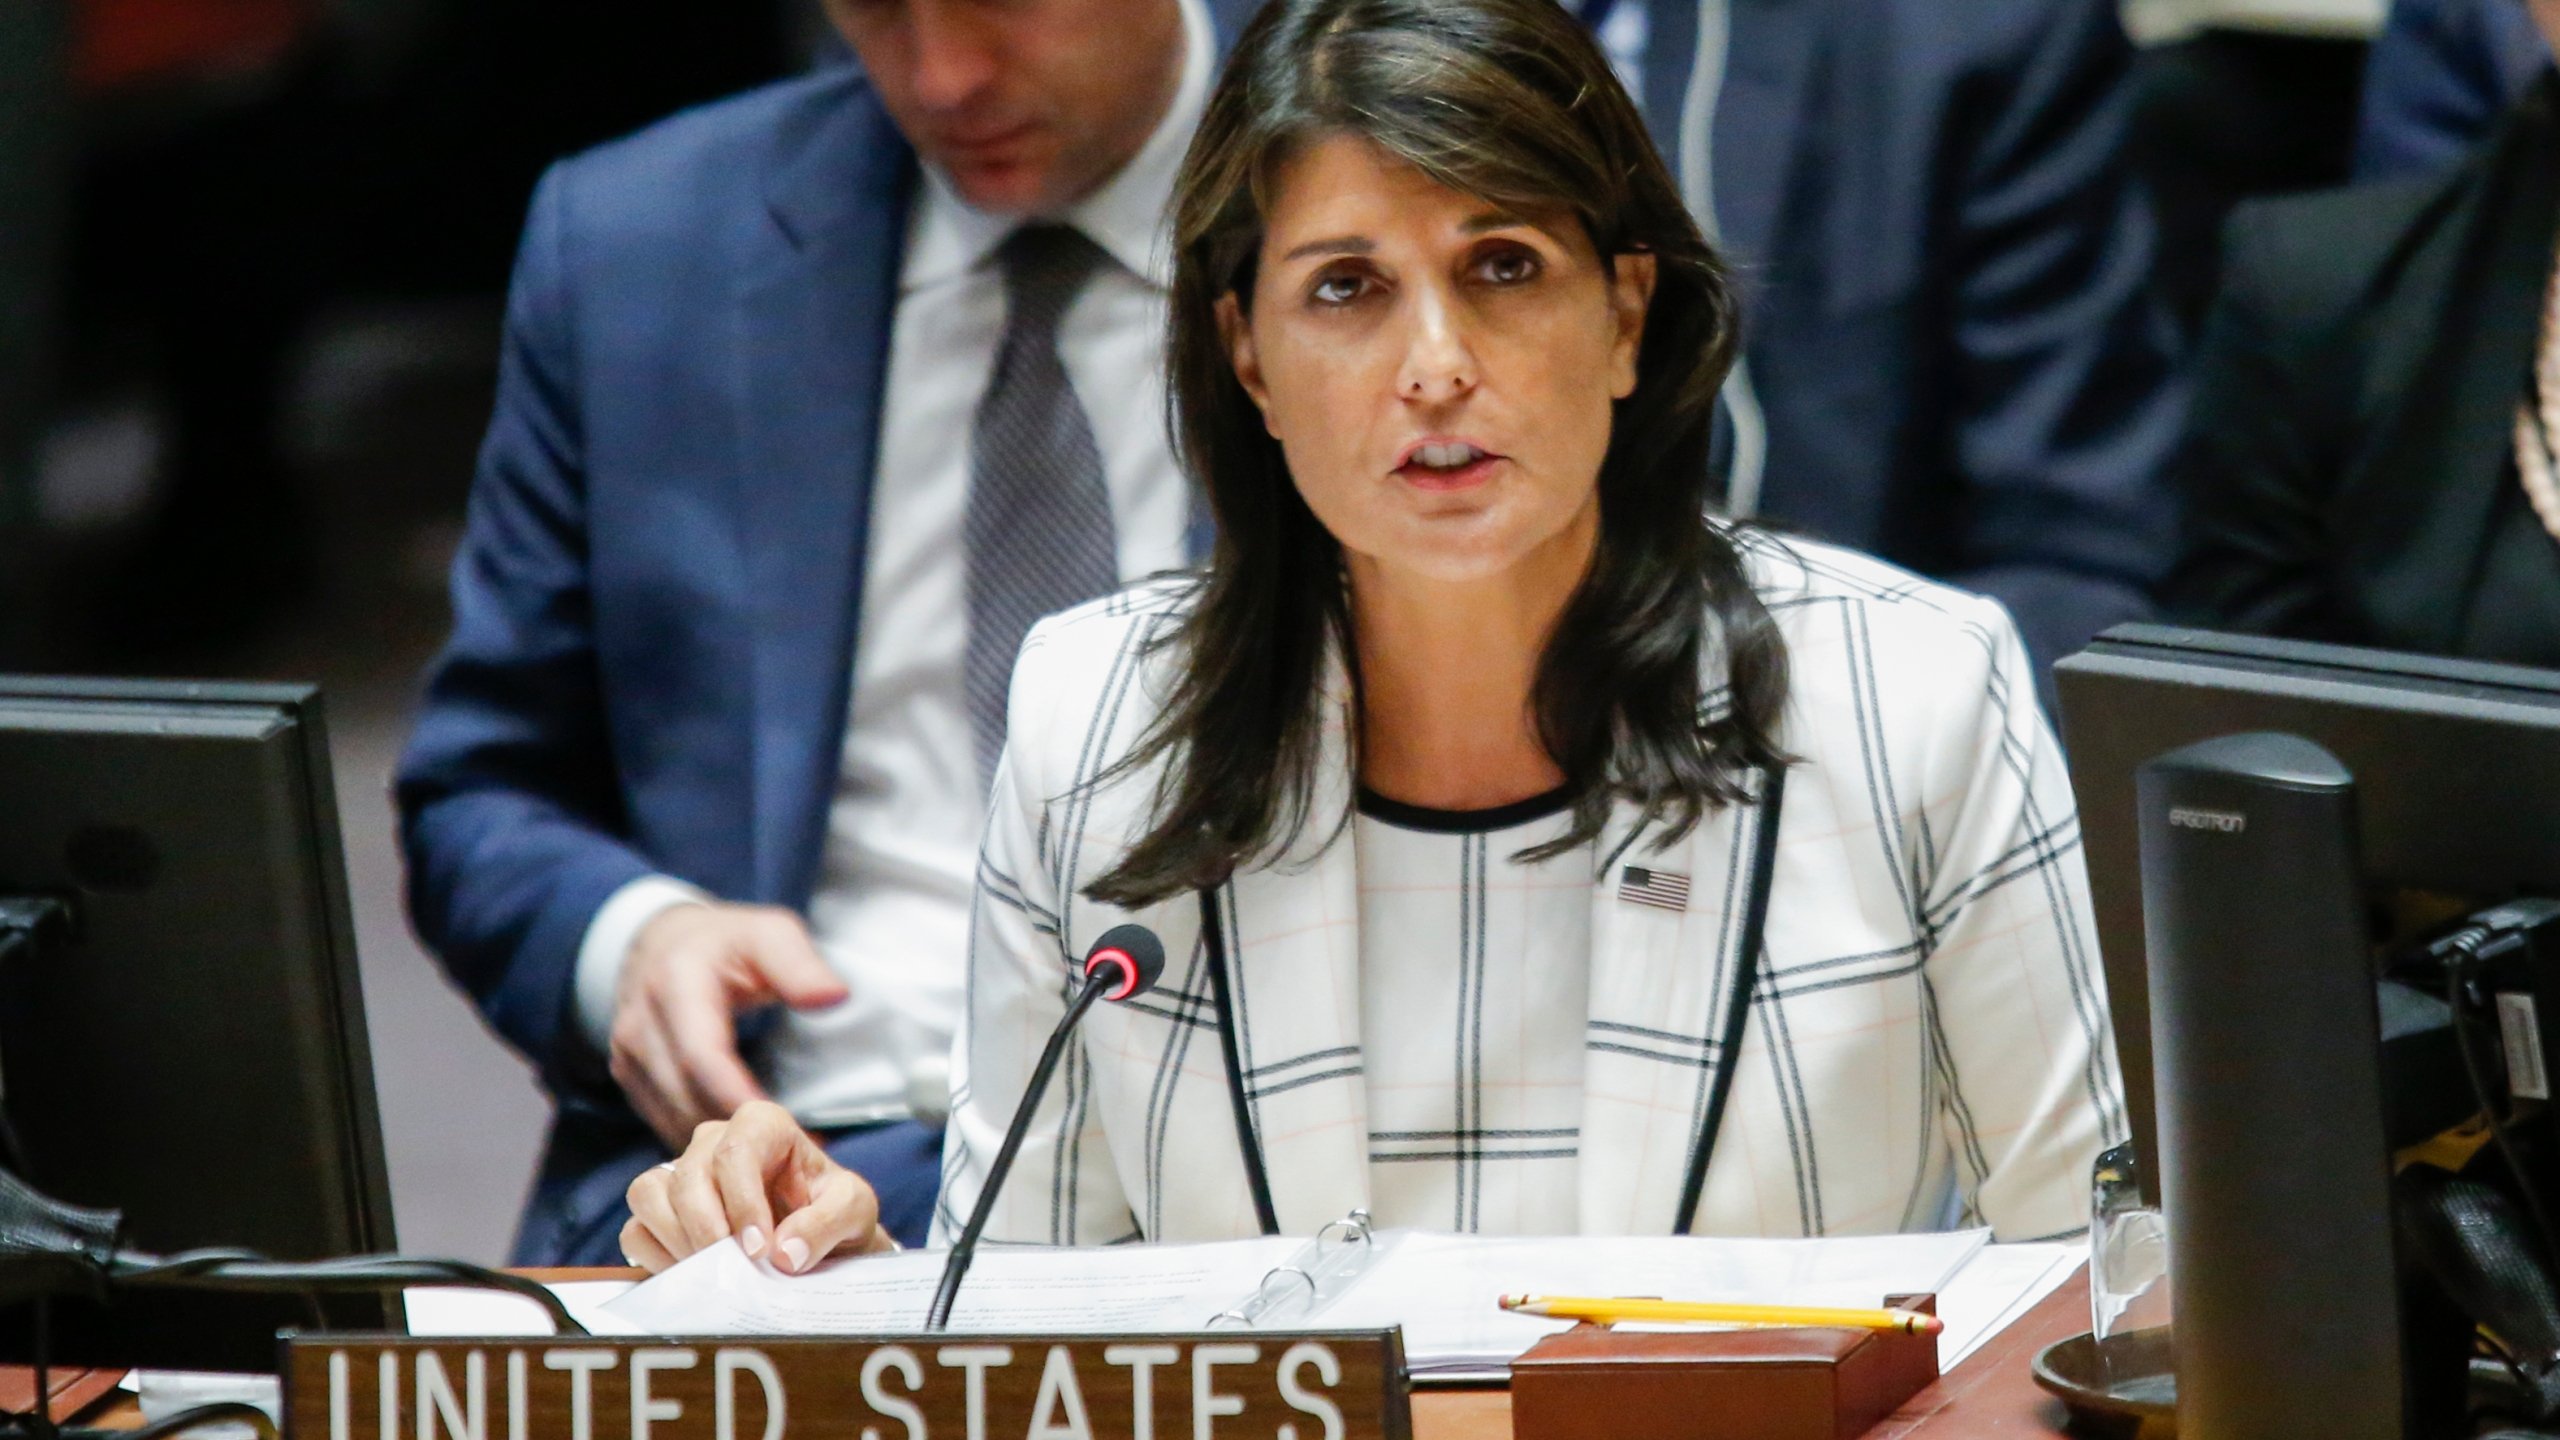 United States Ambassador to the United Nations Nikki Haley speaks during a meeting at the U.N. headquarters in New York City on May 30, 2018. (Credit: Eduardo Munoz Alvarez/Getty Images)